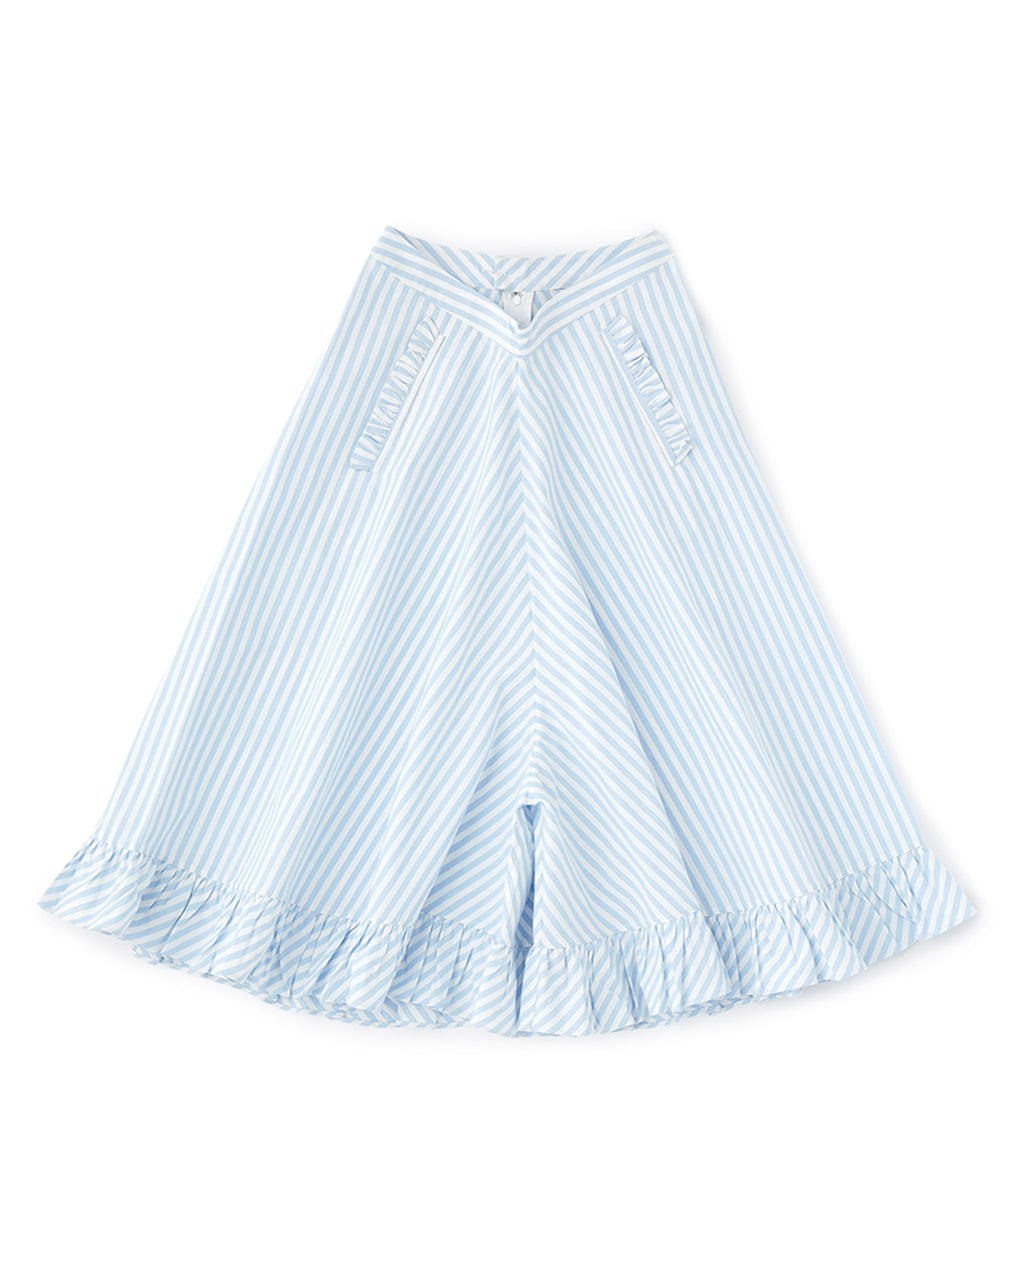 dewdrop pants - blue/white